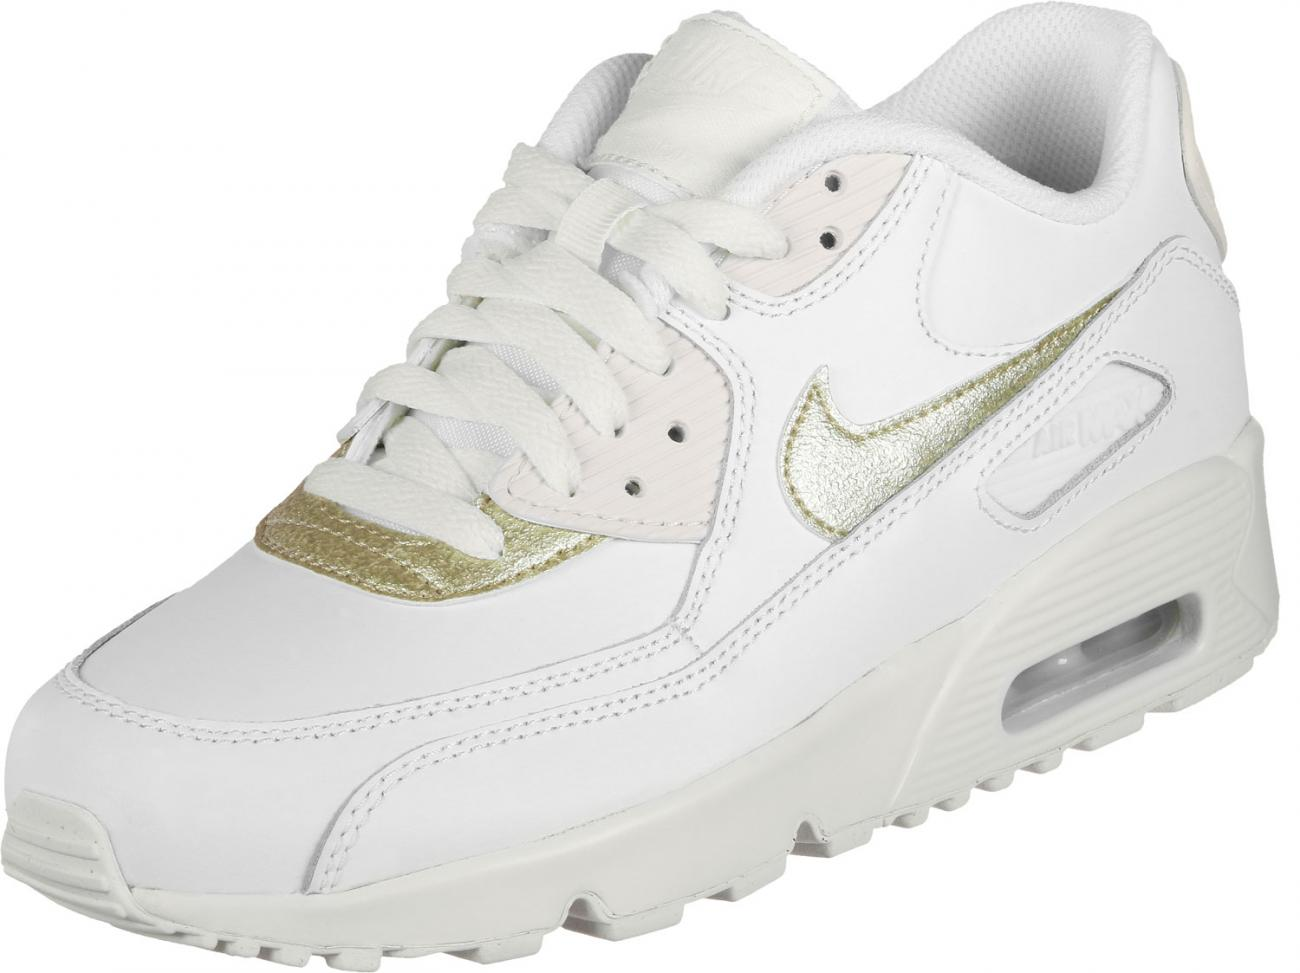 air max leather femme